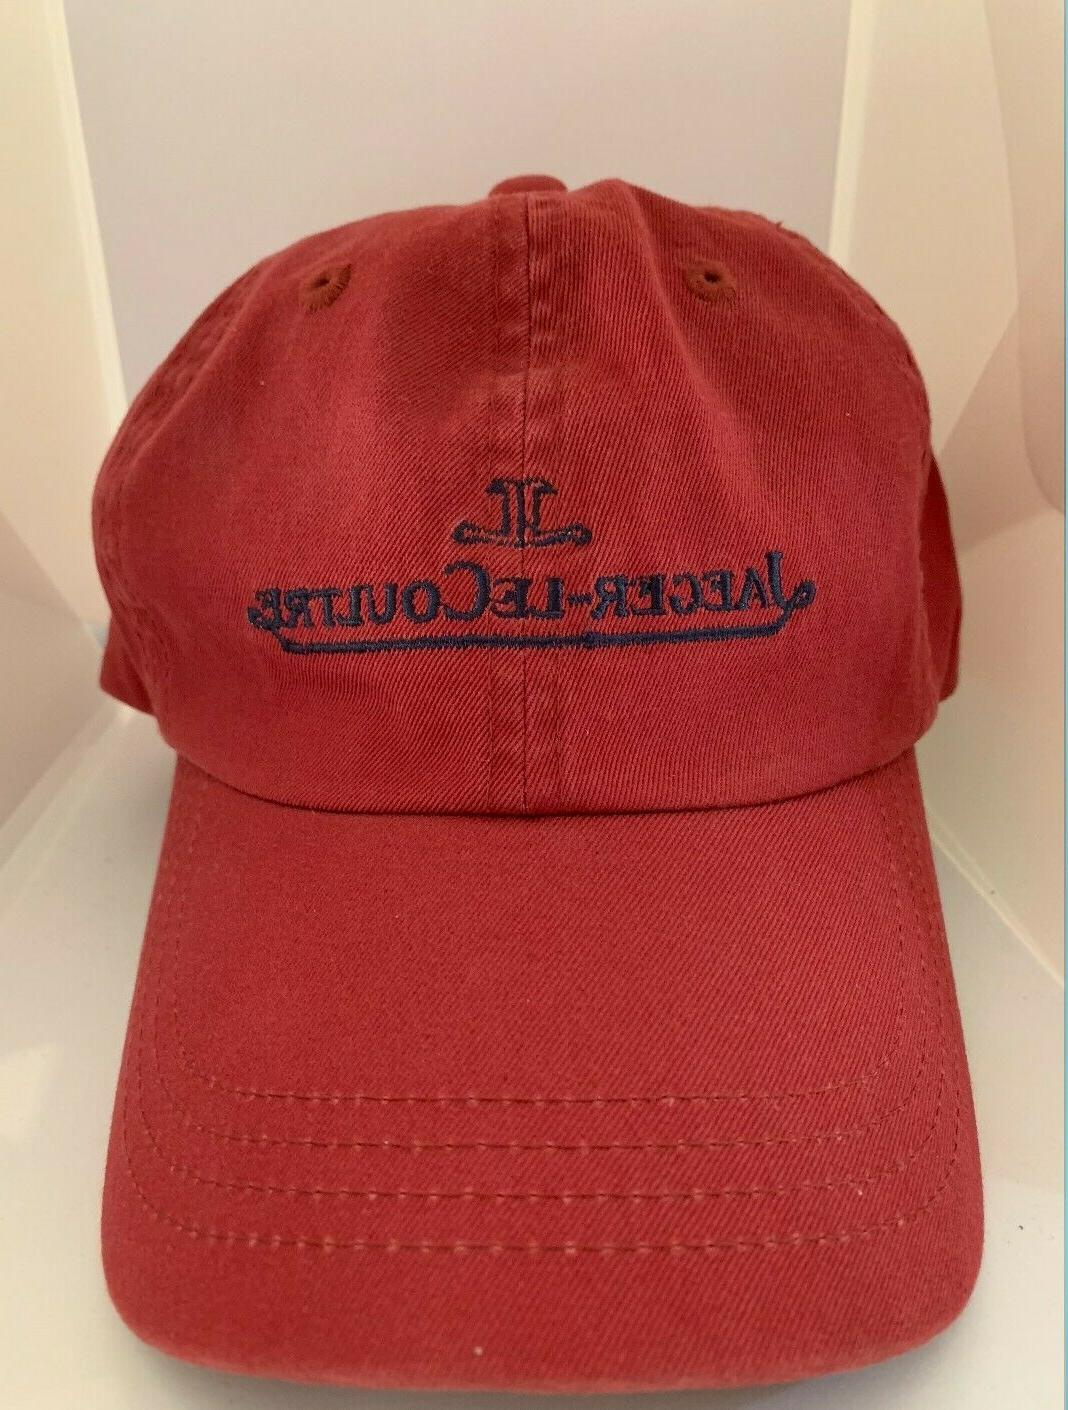 jaeger lecoultre red boutique baseball cap